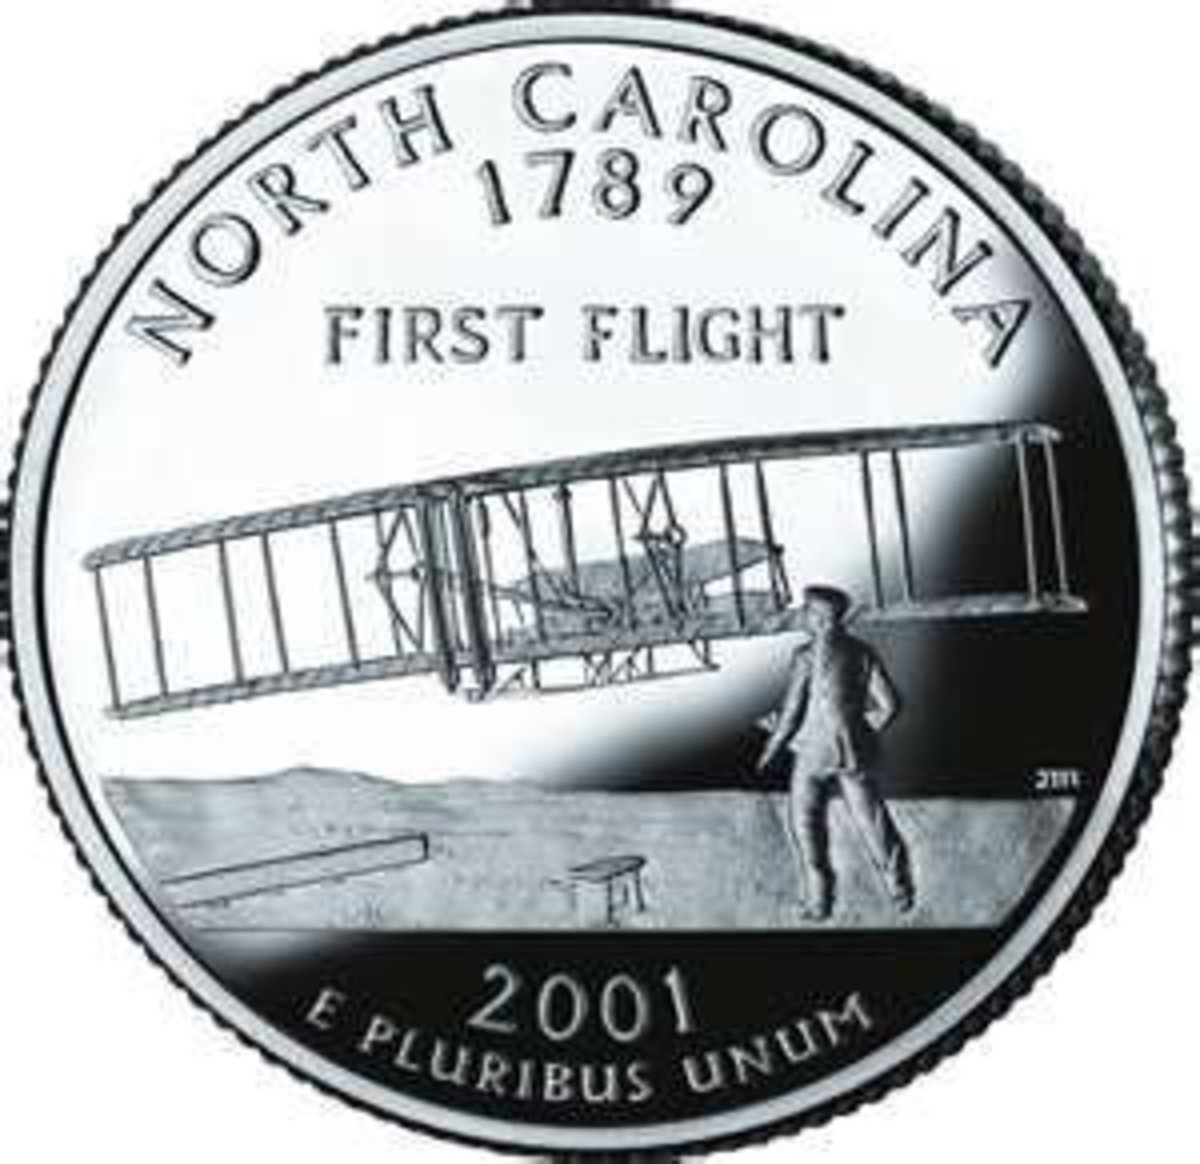 North Carolina's state quarter